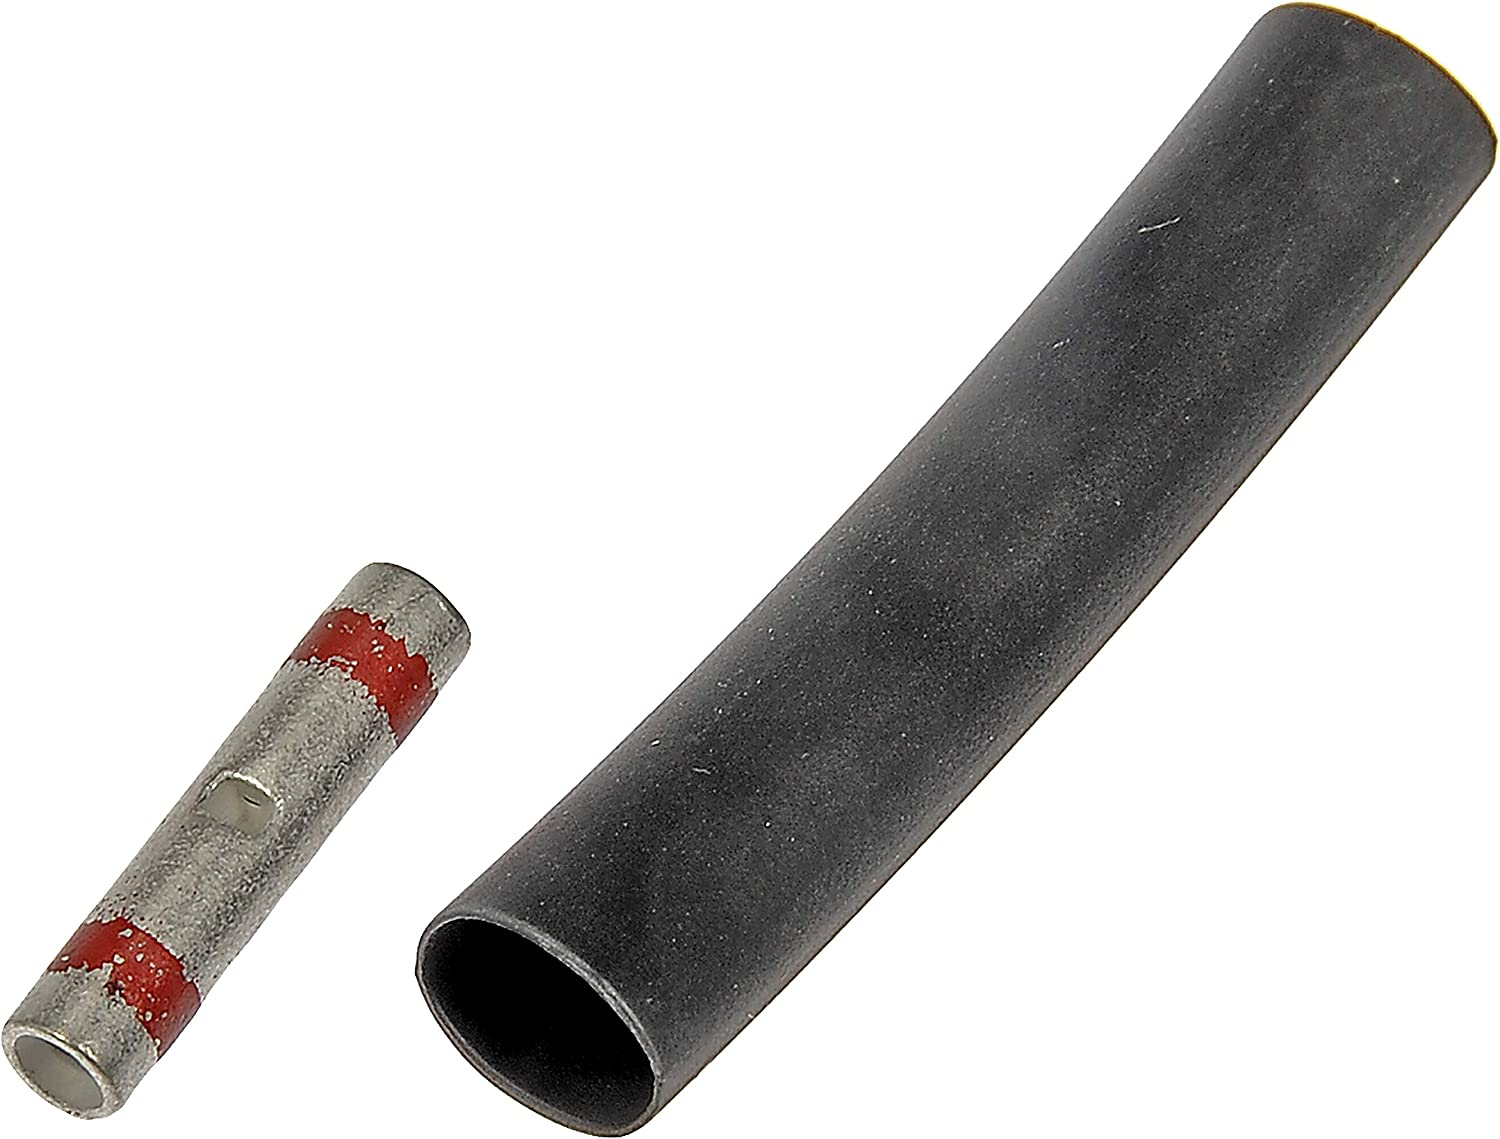 Dorman 90900 Uninsulated 16-22GA Butt Connectors Red